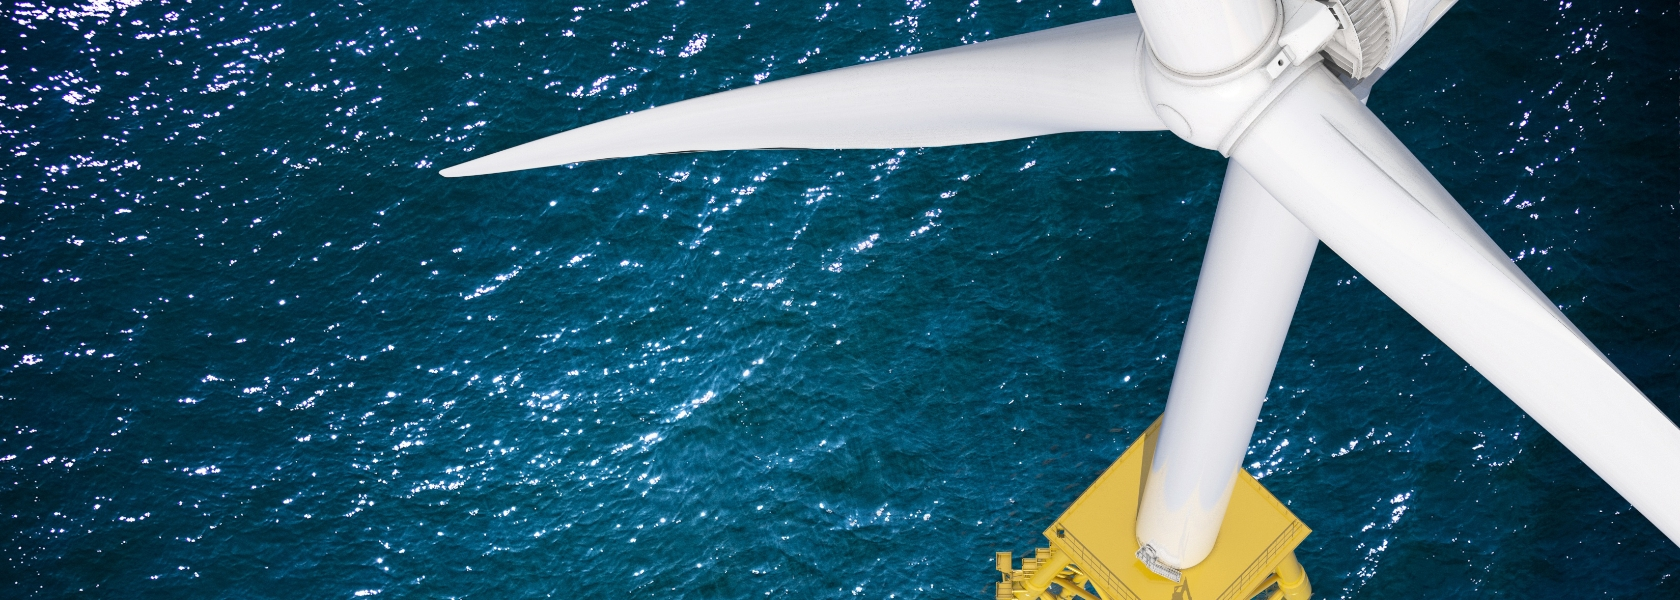 FIRST IN AMERICAN OFFSHORE WIND